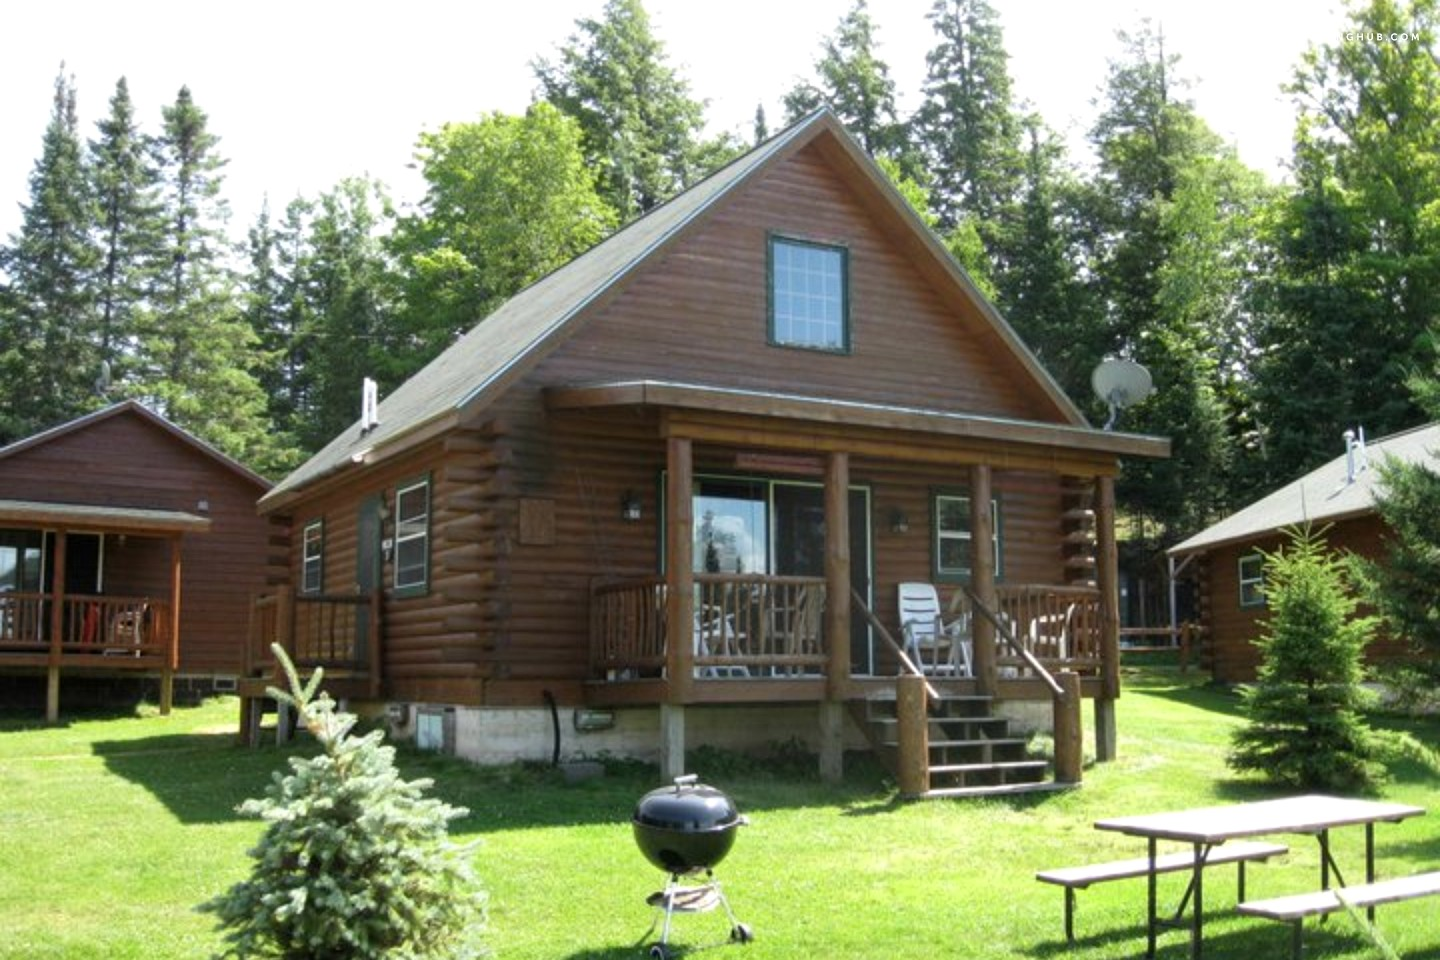 Cabin Rental Near The Great Lakes In Upper Michigan